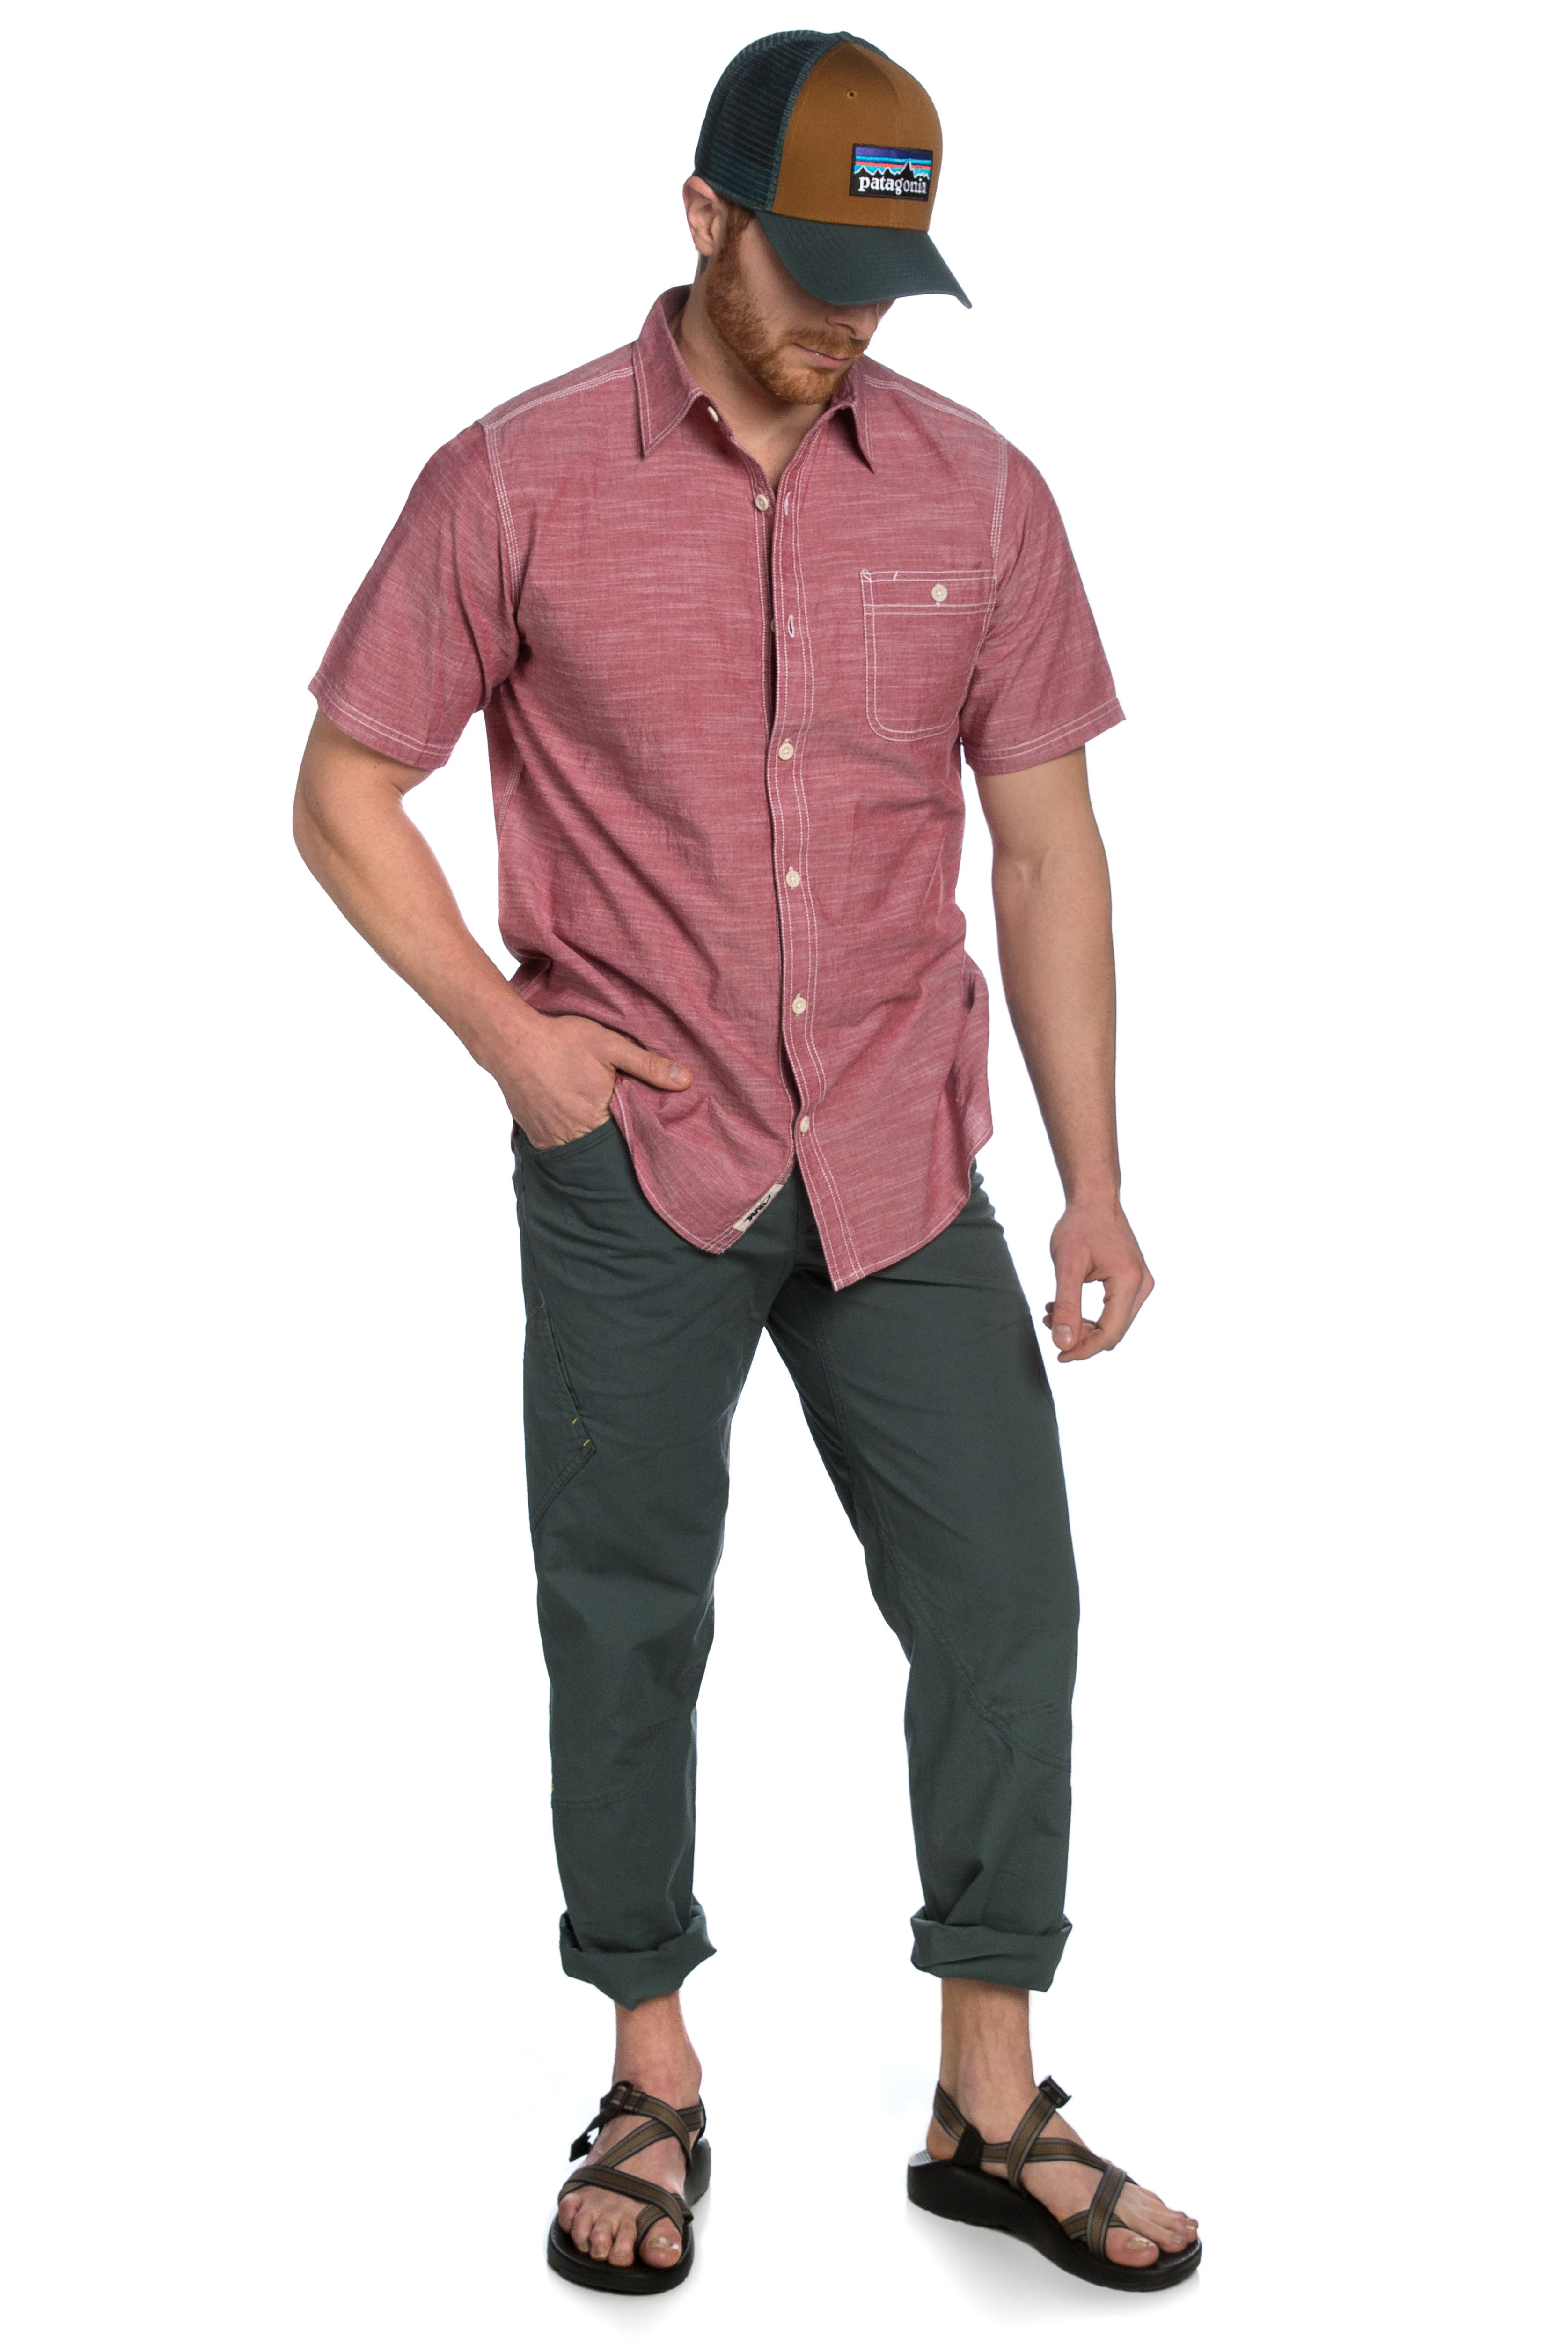 7dad08ad889 Outfit featuring Patagonia Venga Rock Mens Pants